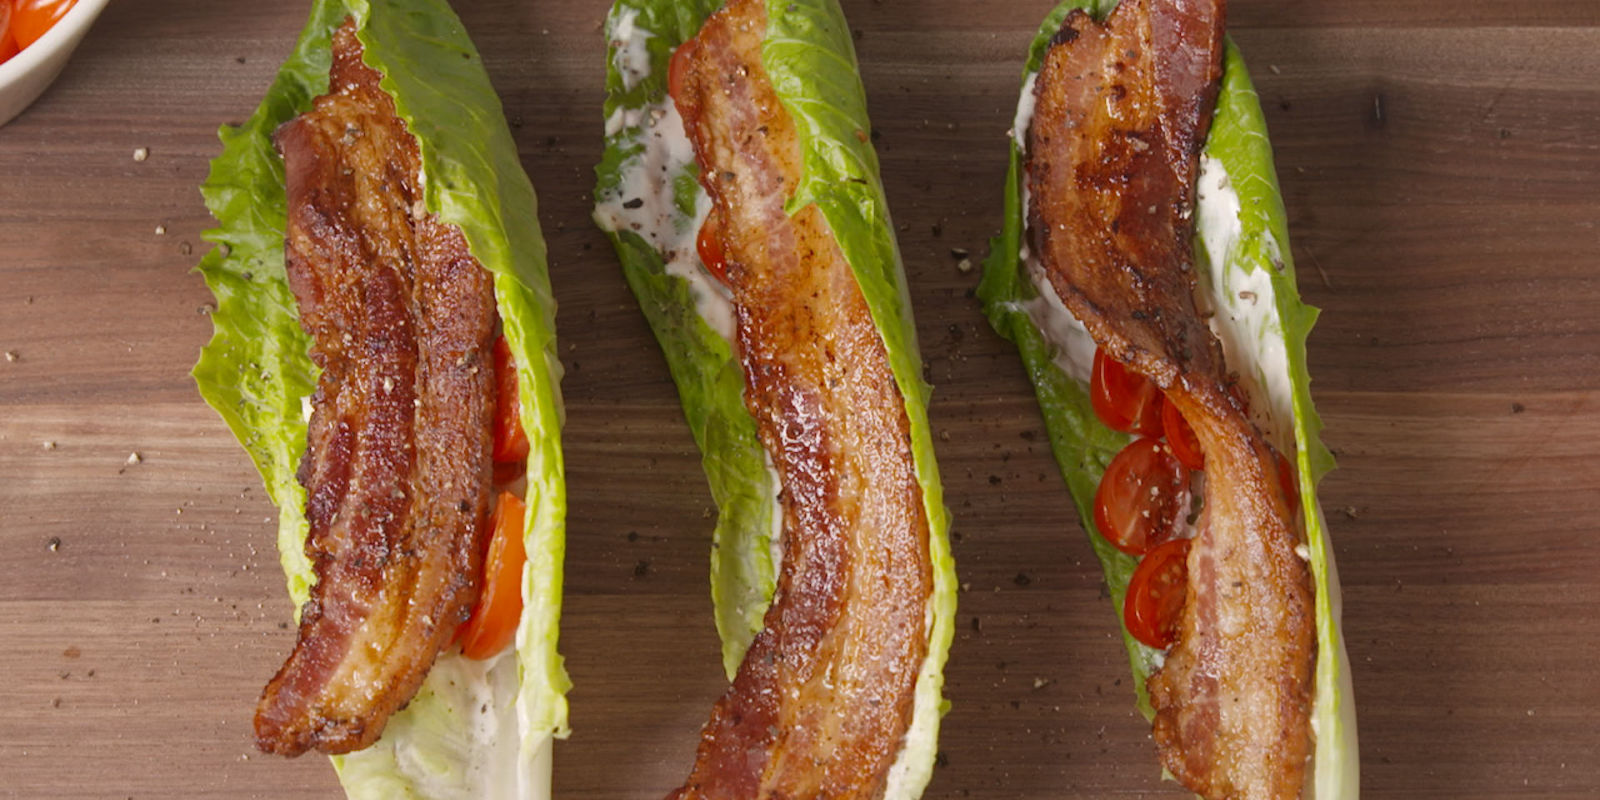 Go Straight For The Good Stuff With This No-Carb BLT